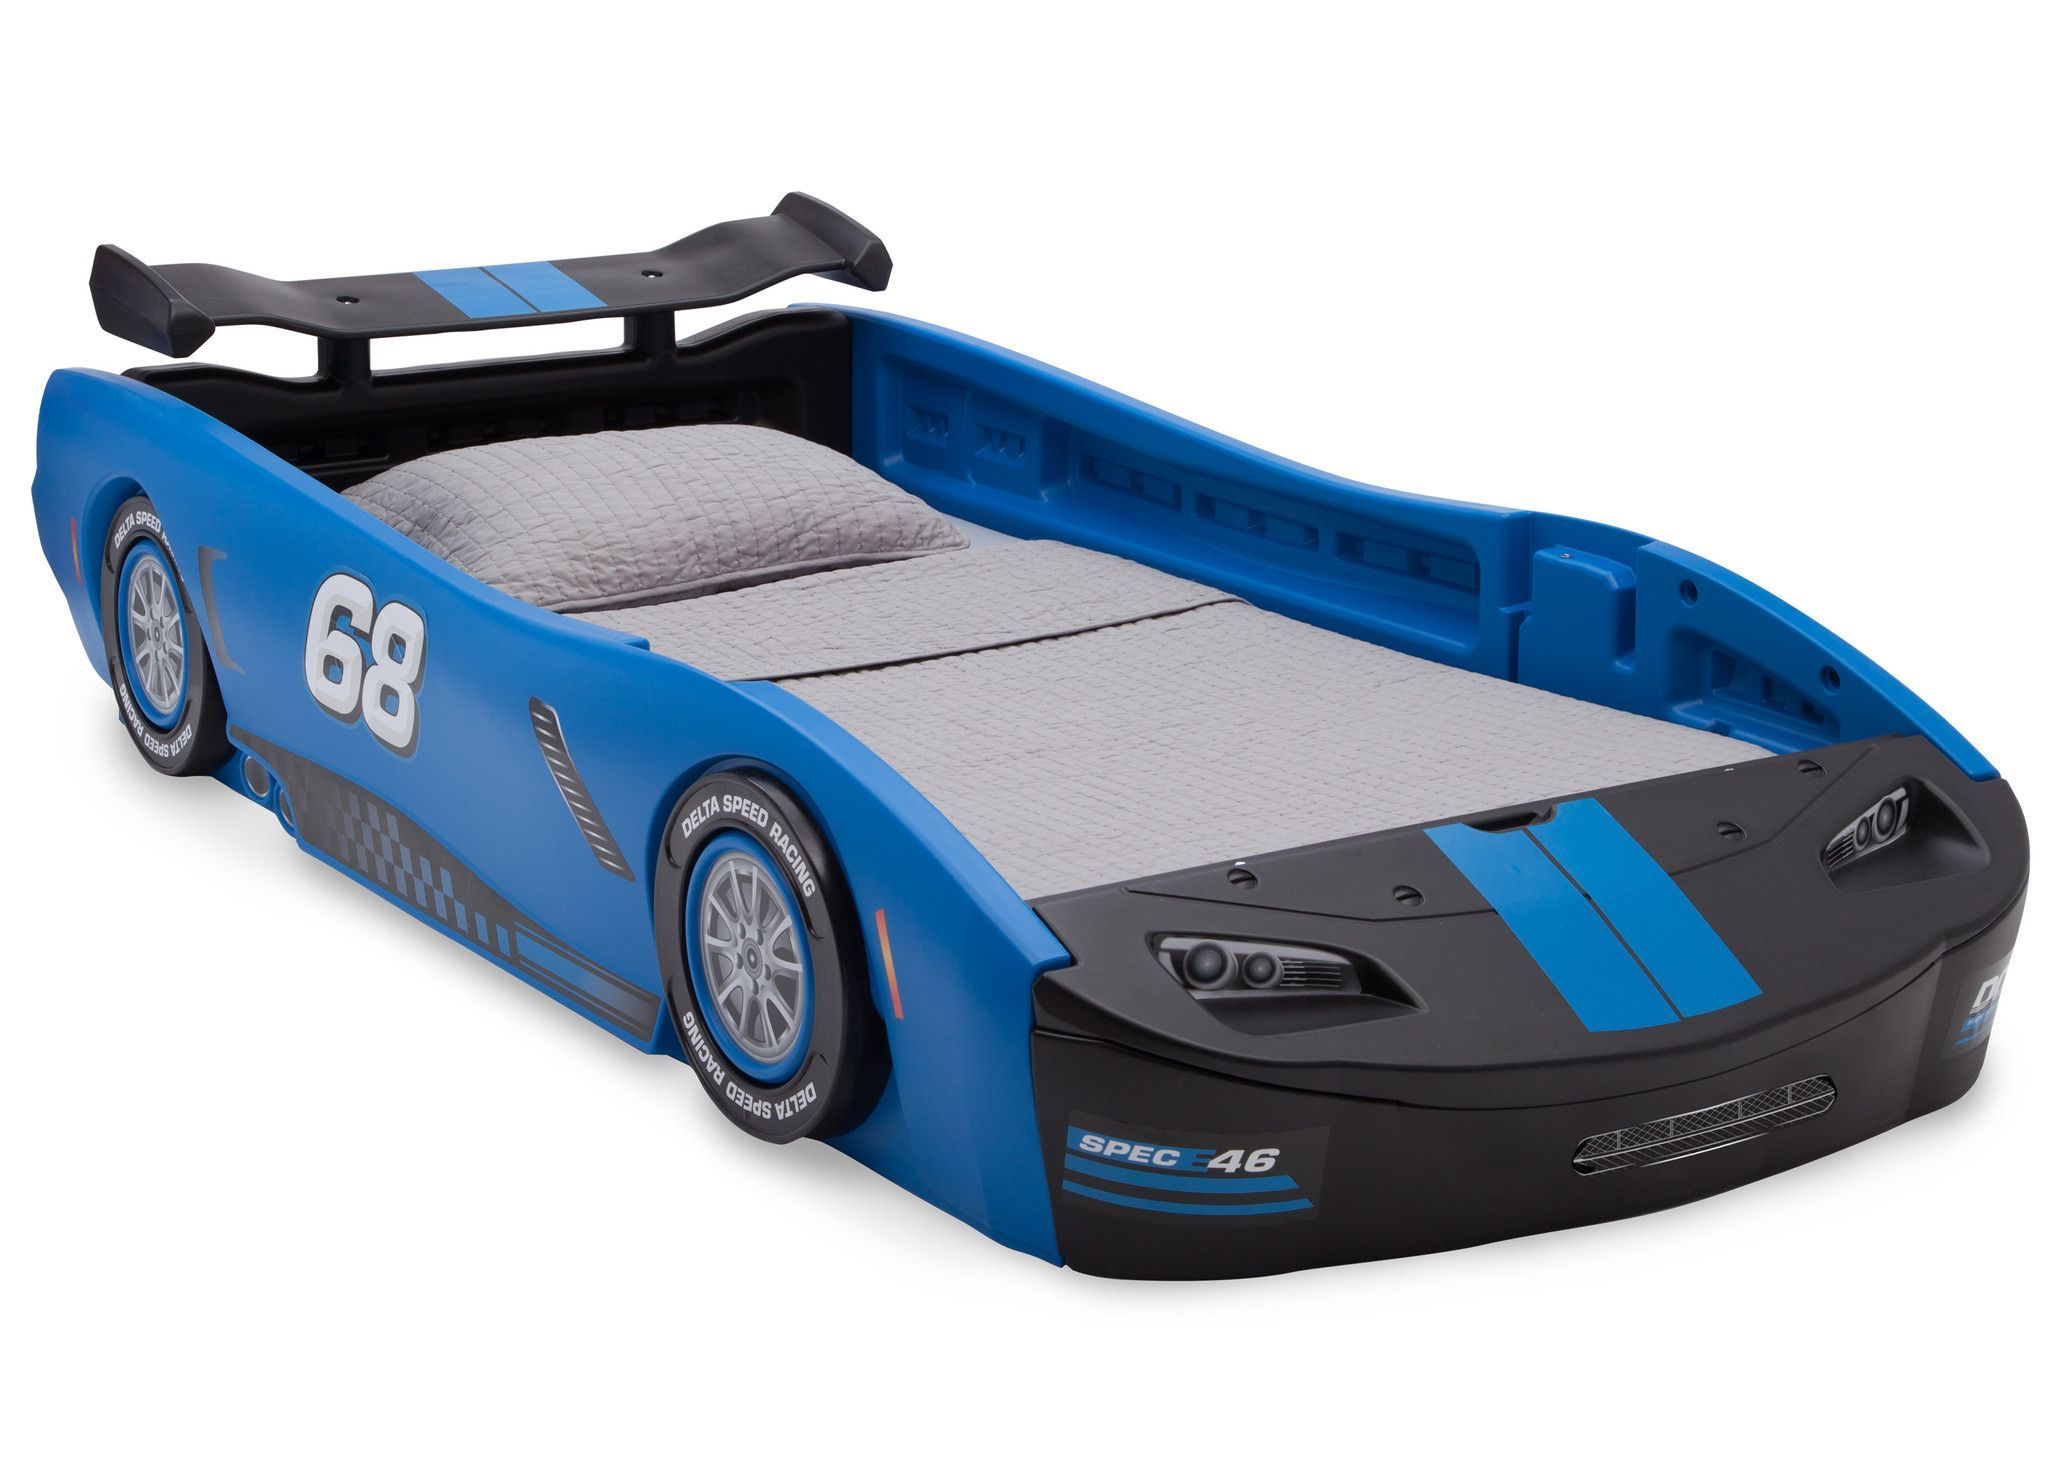 Turbo Race Car Twin Bed, Blue Twin car bed, Delta